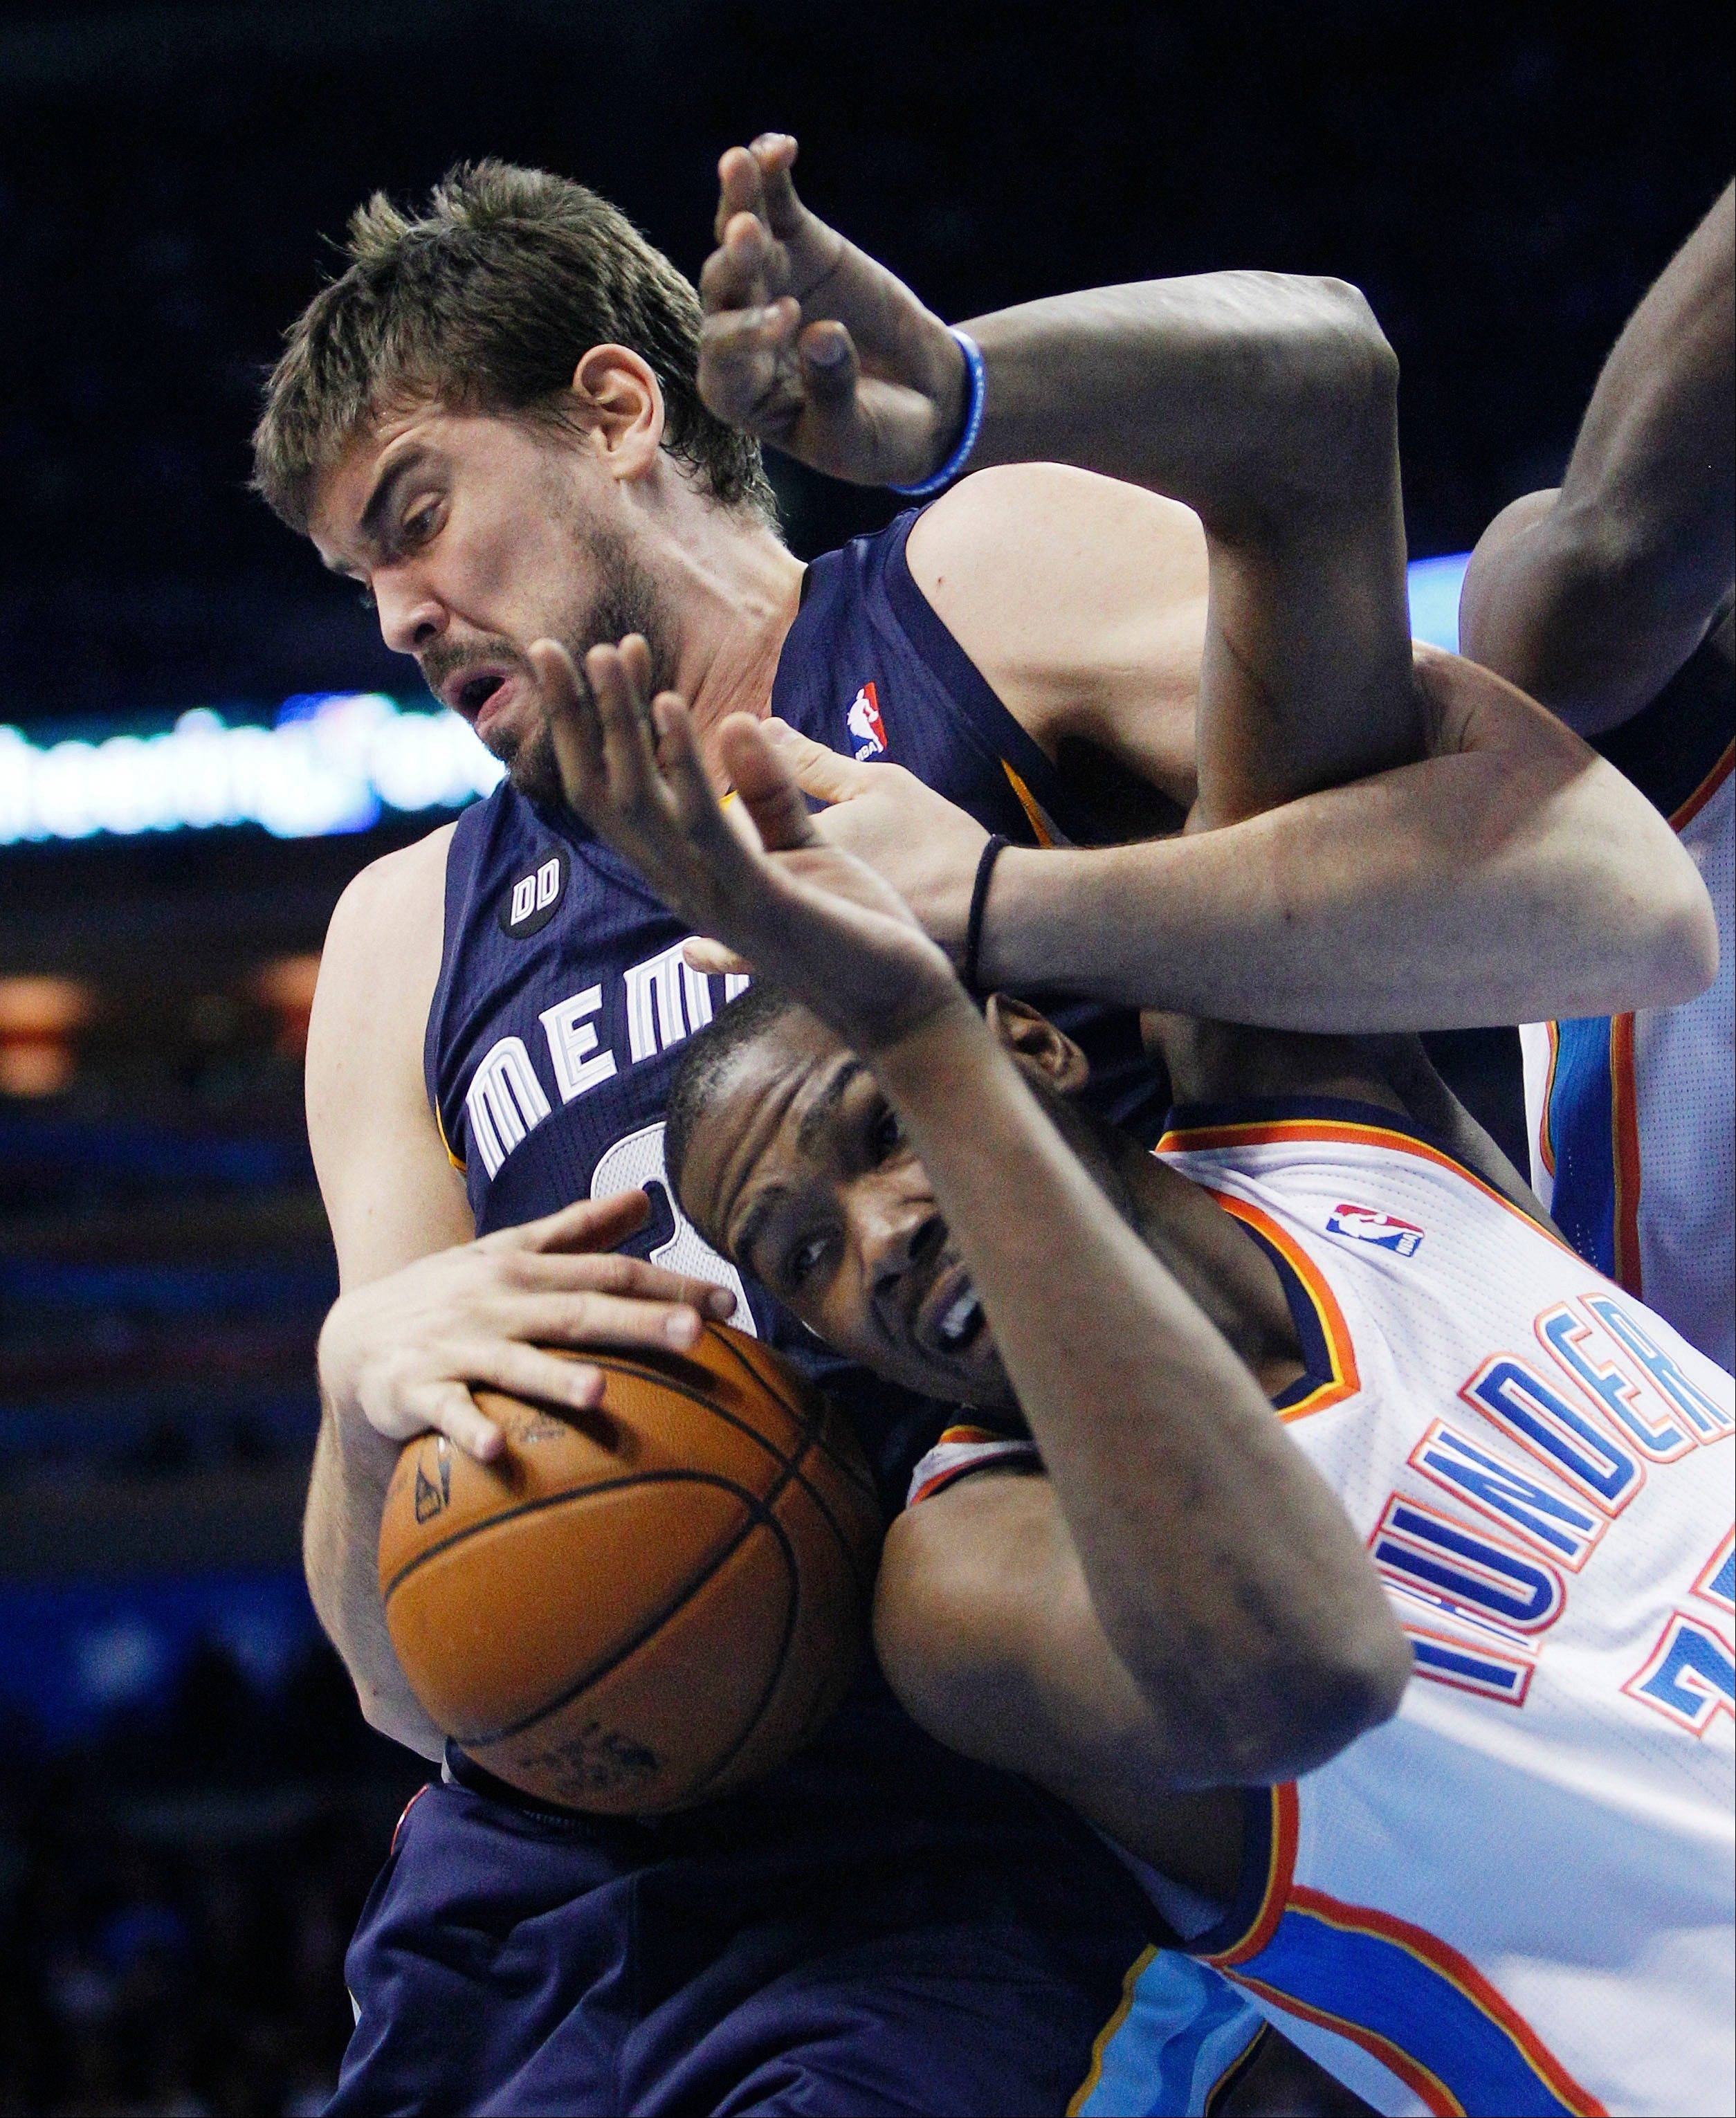 Memphis Grizzlies center Marc Gasol, left, wraps up Oklahoma City Thunder forward Kevin Durant, right, as he grabs a rebound Wednesday during the second quarter in Oklahoma City.